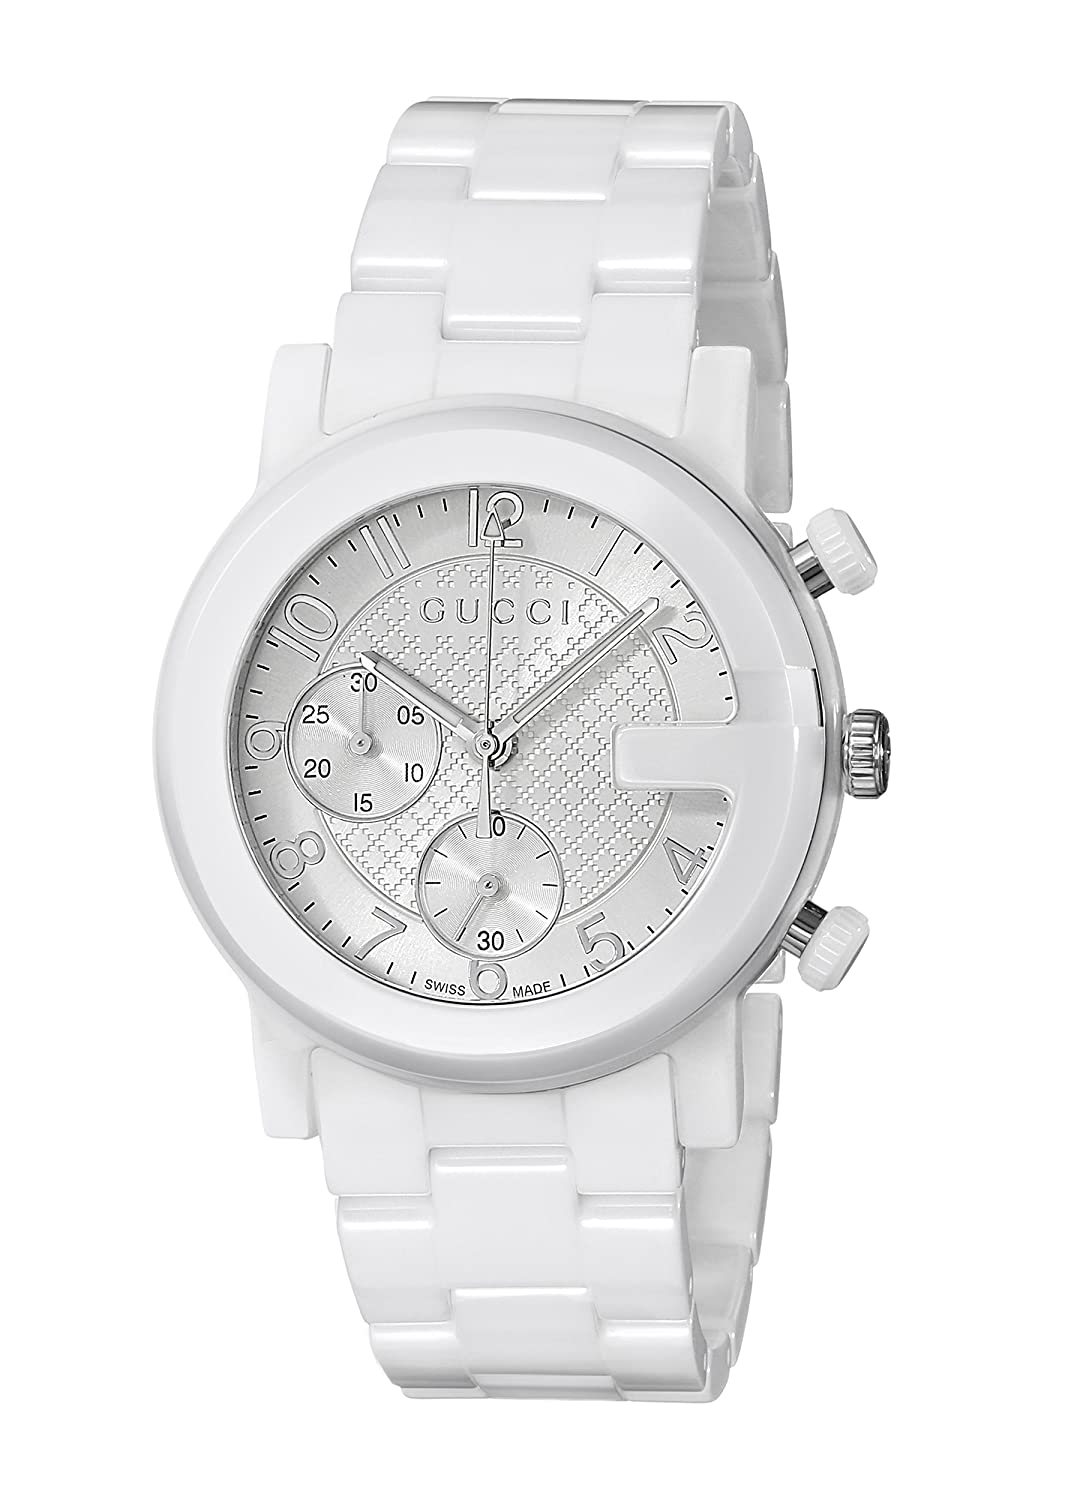 d73e3d02a30 Amazon.com  Gucci G - Chrono Collection Analog Display Swiss Quartz White  Men s Watch(Model YA101353)  Watches